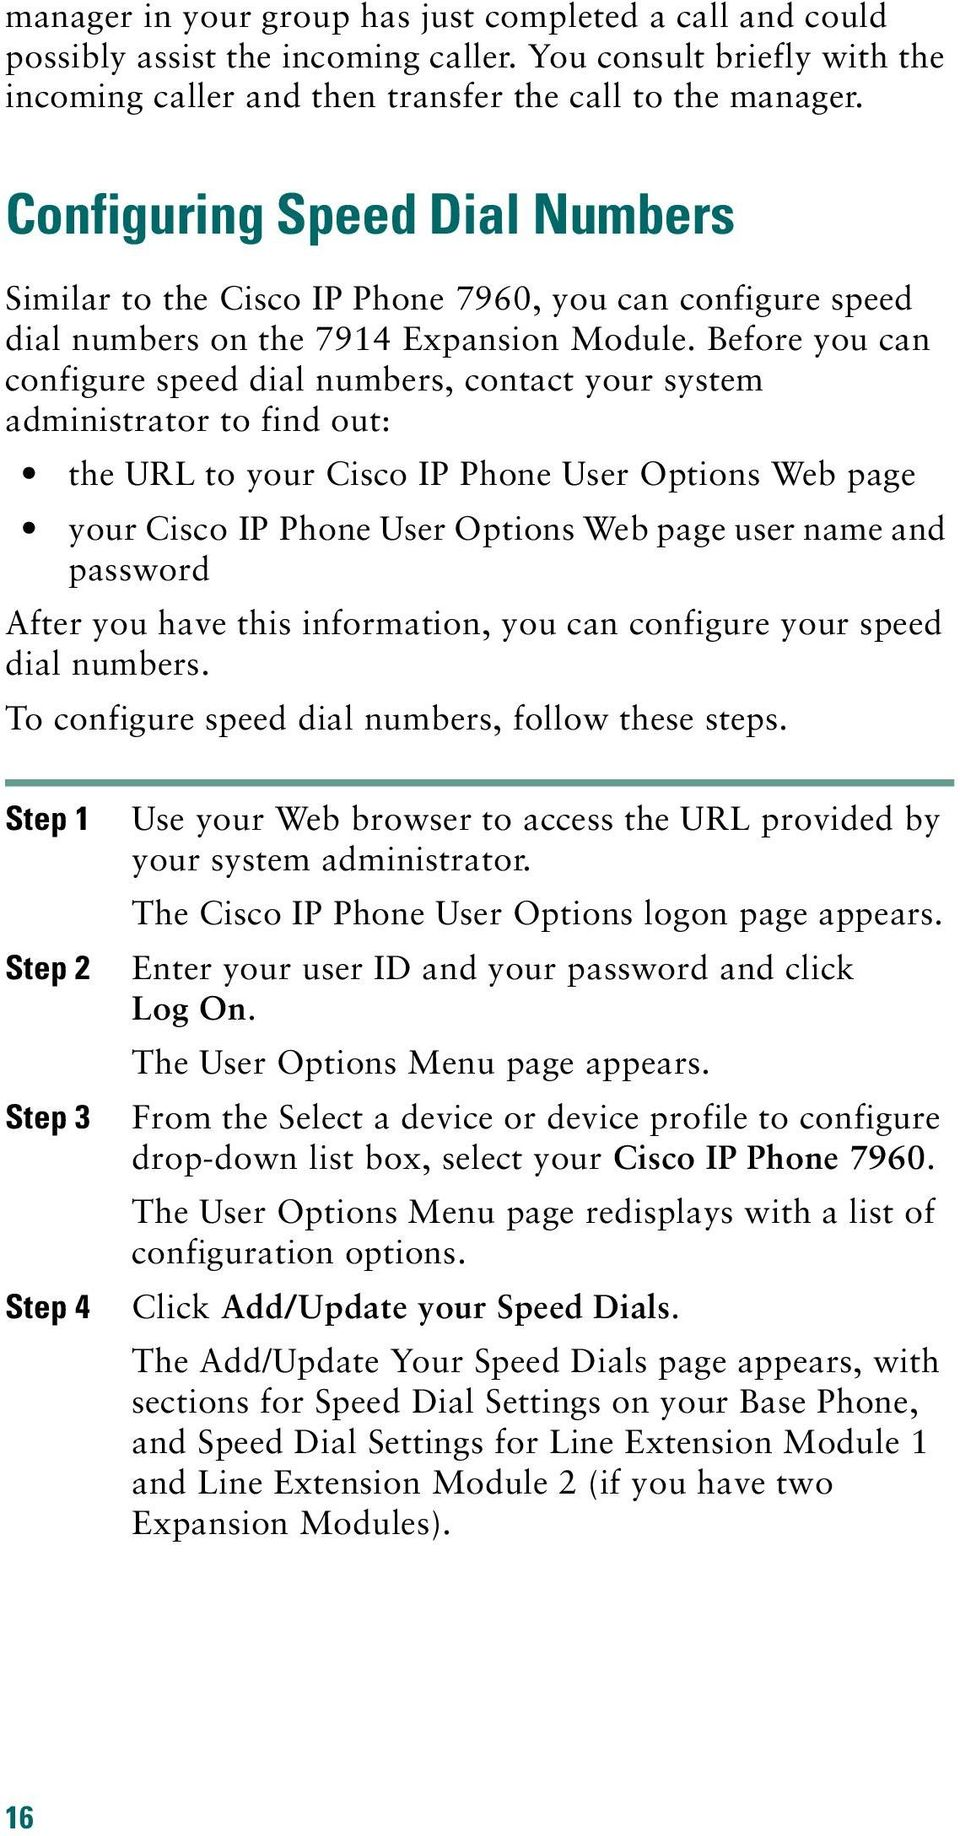 Before you can configure speed dial numbers, contact your system administrator to find out: the URL to your Cisco IP Phone User Options Web page your Cisco IP Phone User Options Web page user name